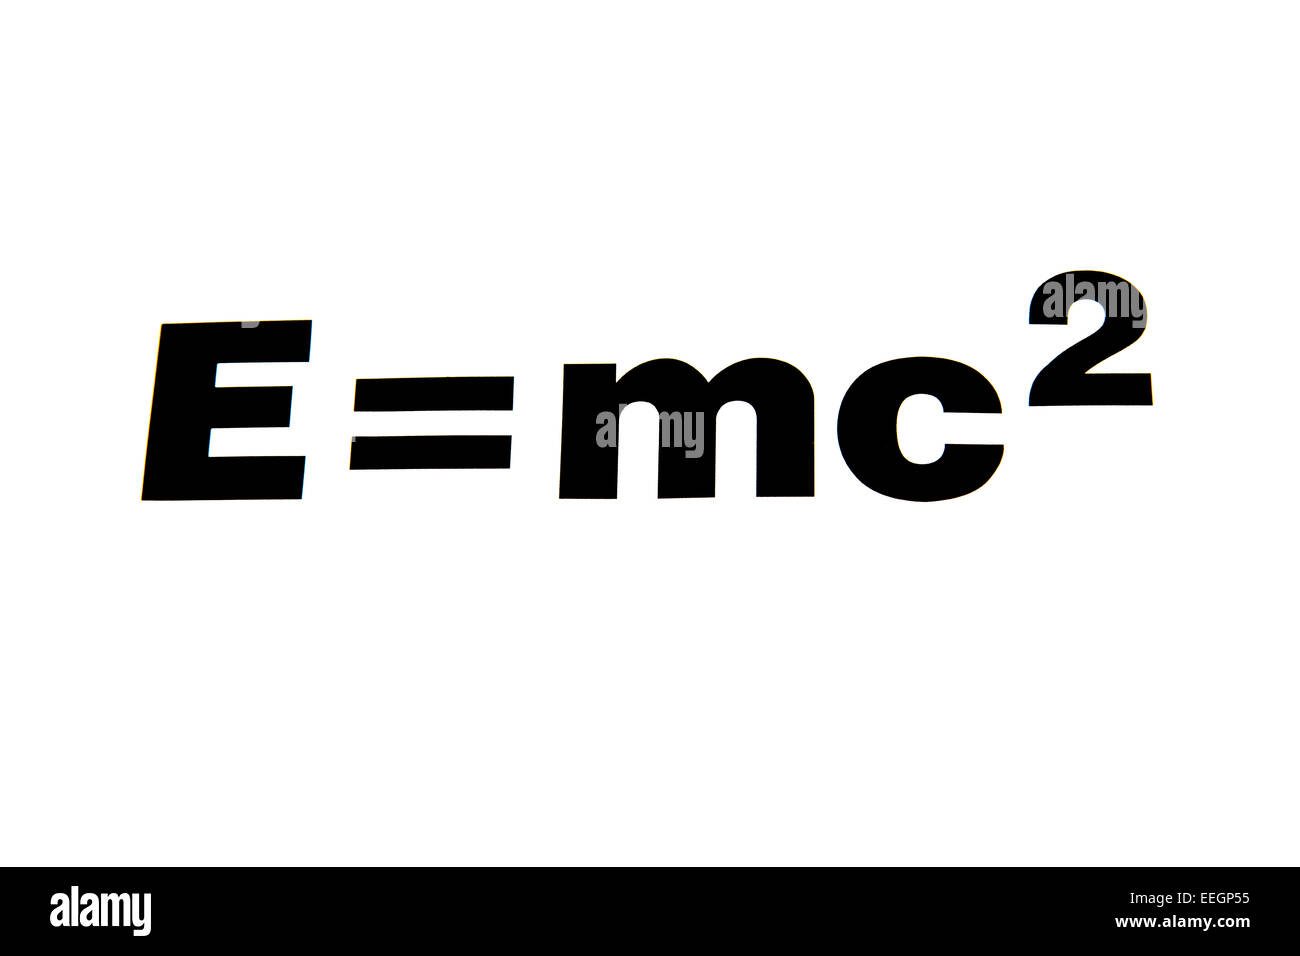 Background image e - Stock Photo E Mc2 E Mc 2 Squared Square Equation Einstein Word Written Print Cut Out Copy Space White Background